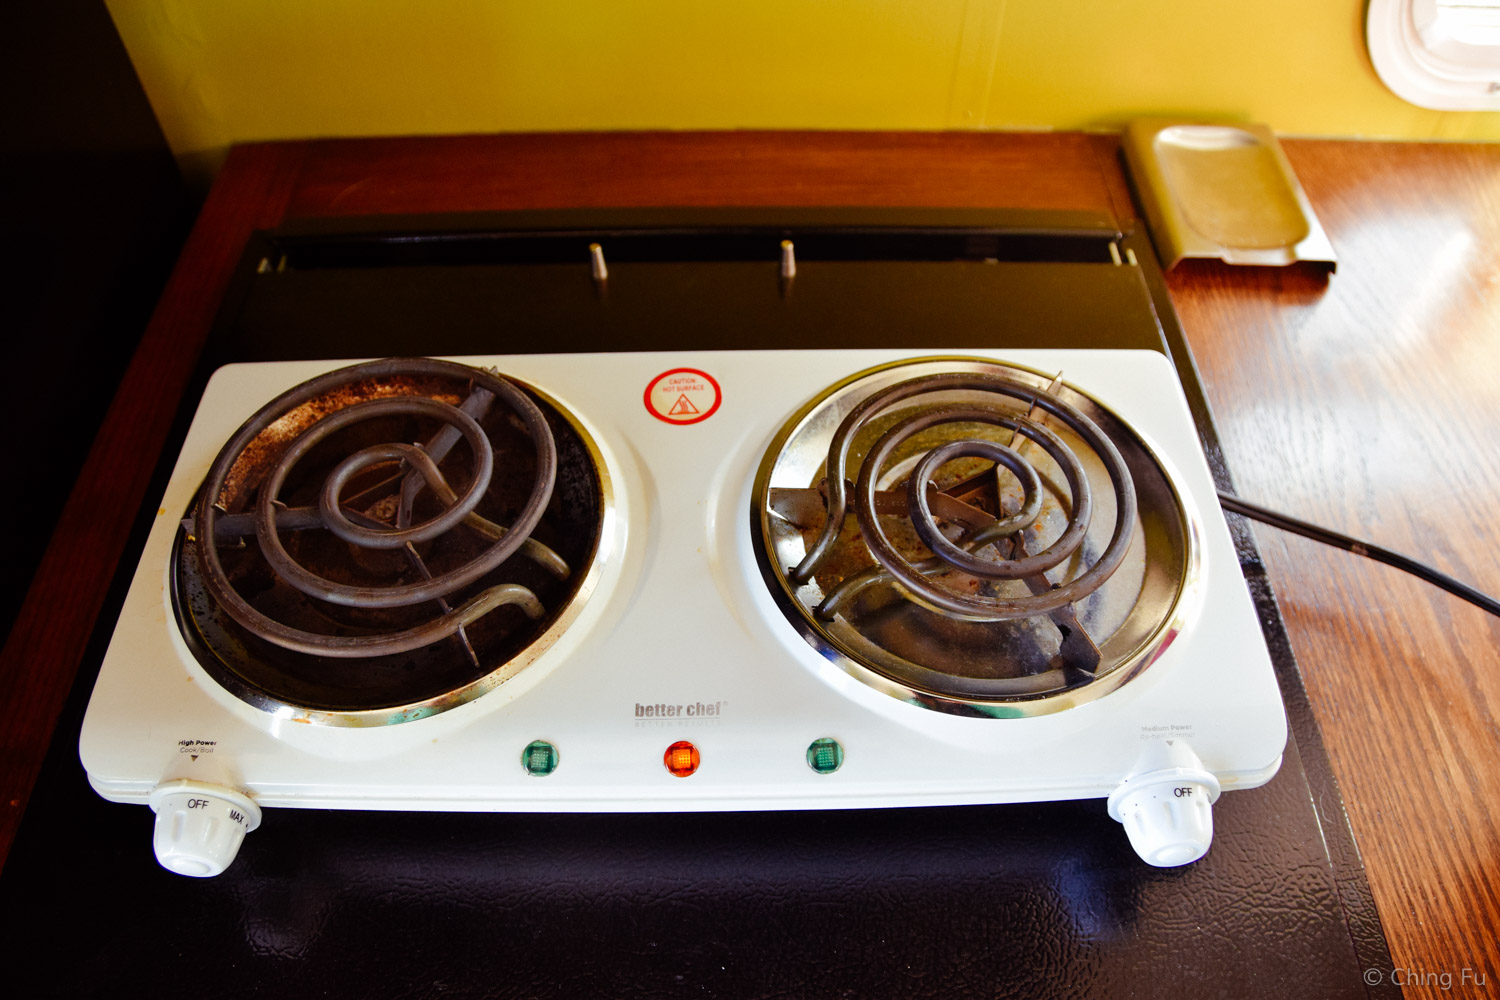 This is the electric cooktop we used for about a year before switching to an induction cooktop.